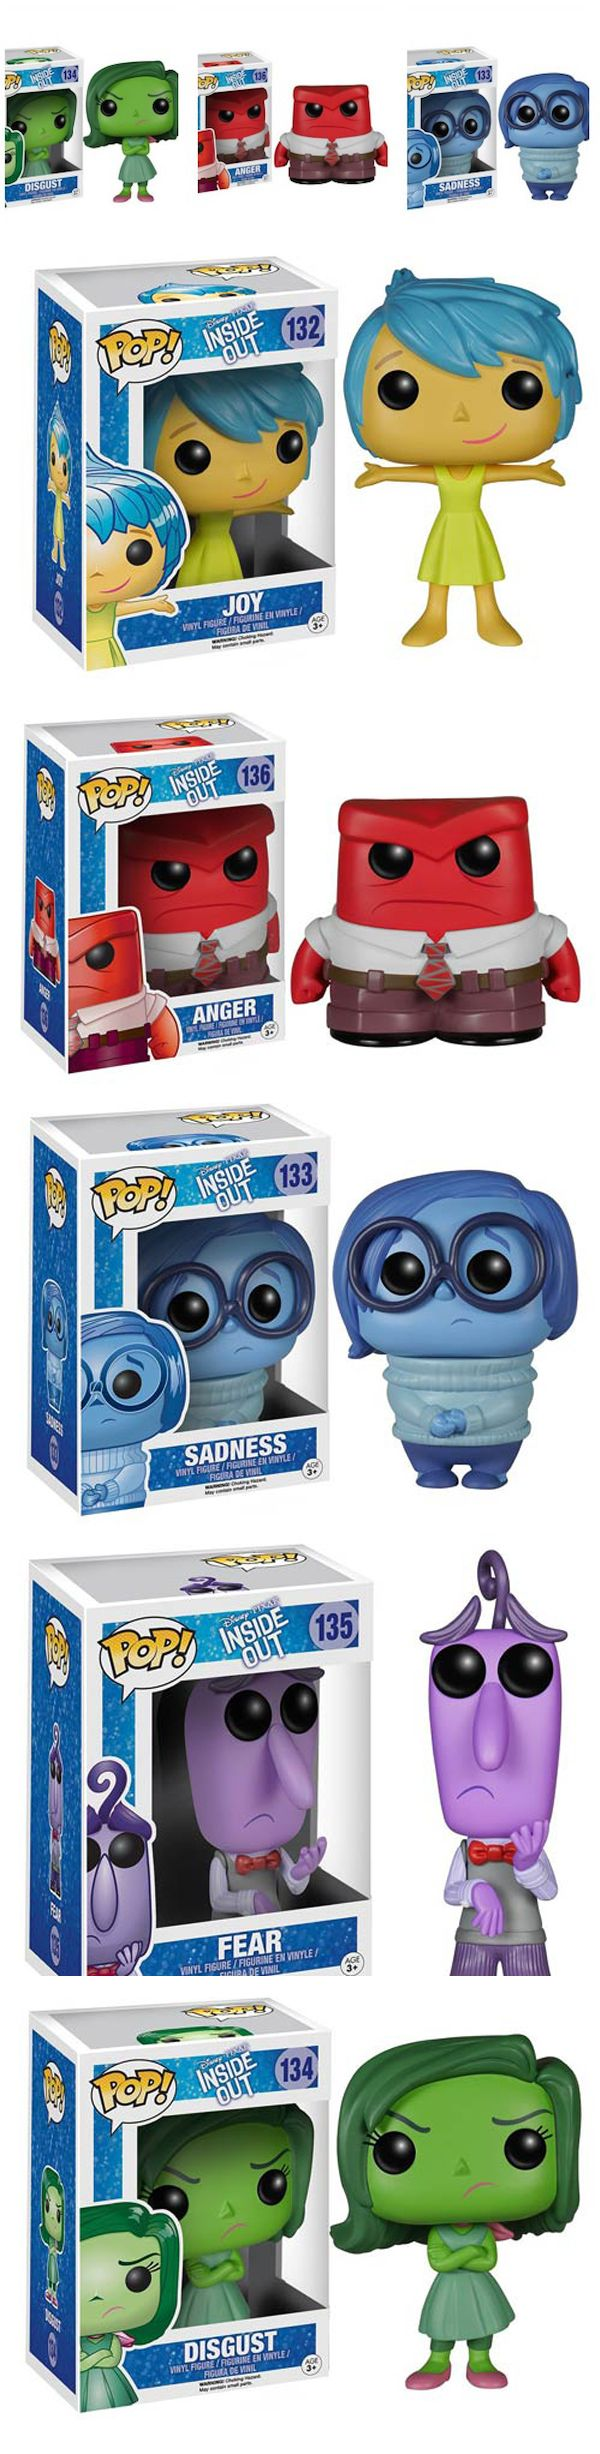 """The New Funko POP!s For Pixar's """"Inside Out"""" Are As Cute As You Would Expect Pixar's newest movie Inside Out already looks like will have that mix of adorable, comedic, and serious that we've come to appreciate from Pixar. It's the adorable that really comes into play with these new Funko POP!s of Riley's inner feelings; Anger, Joy, Despair, Sadness, and Fear. Read more at…"""